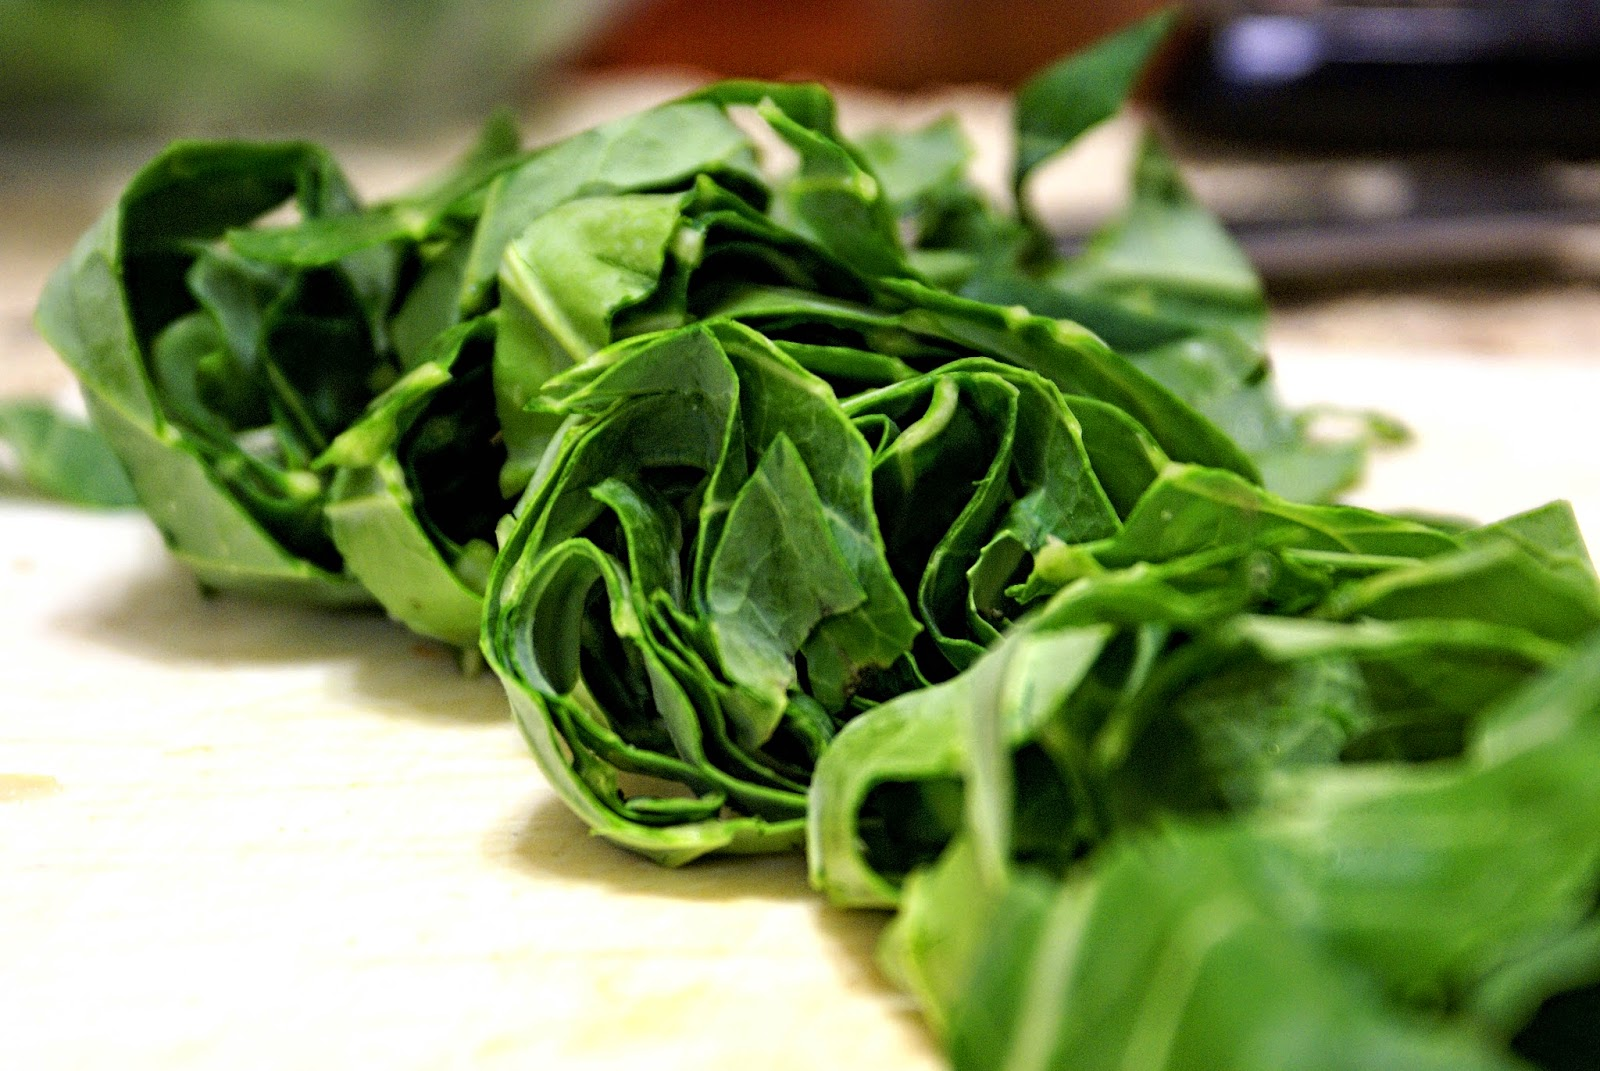 Sliced collard greens